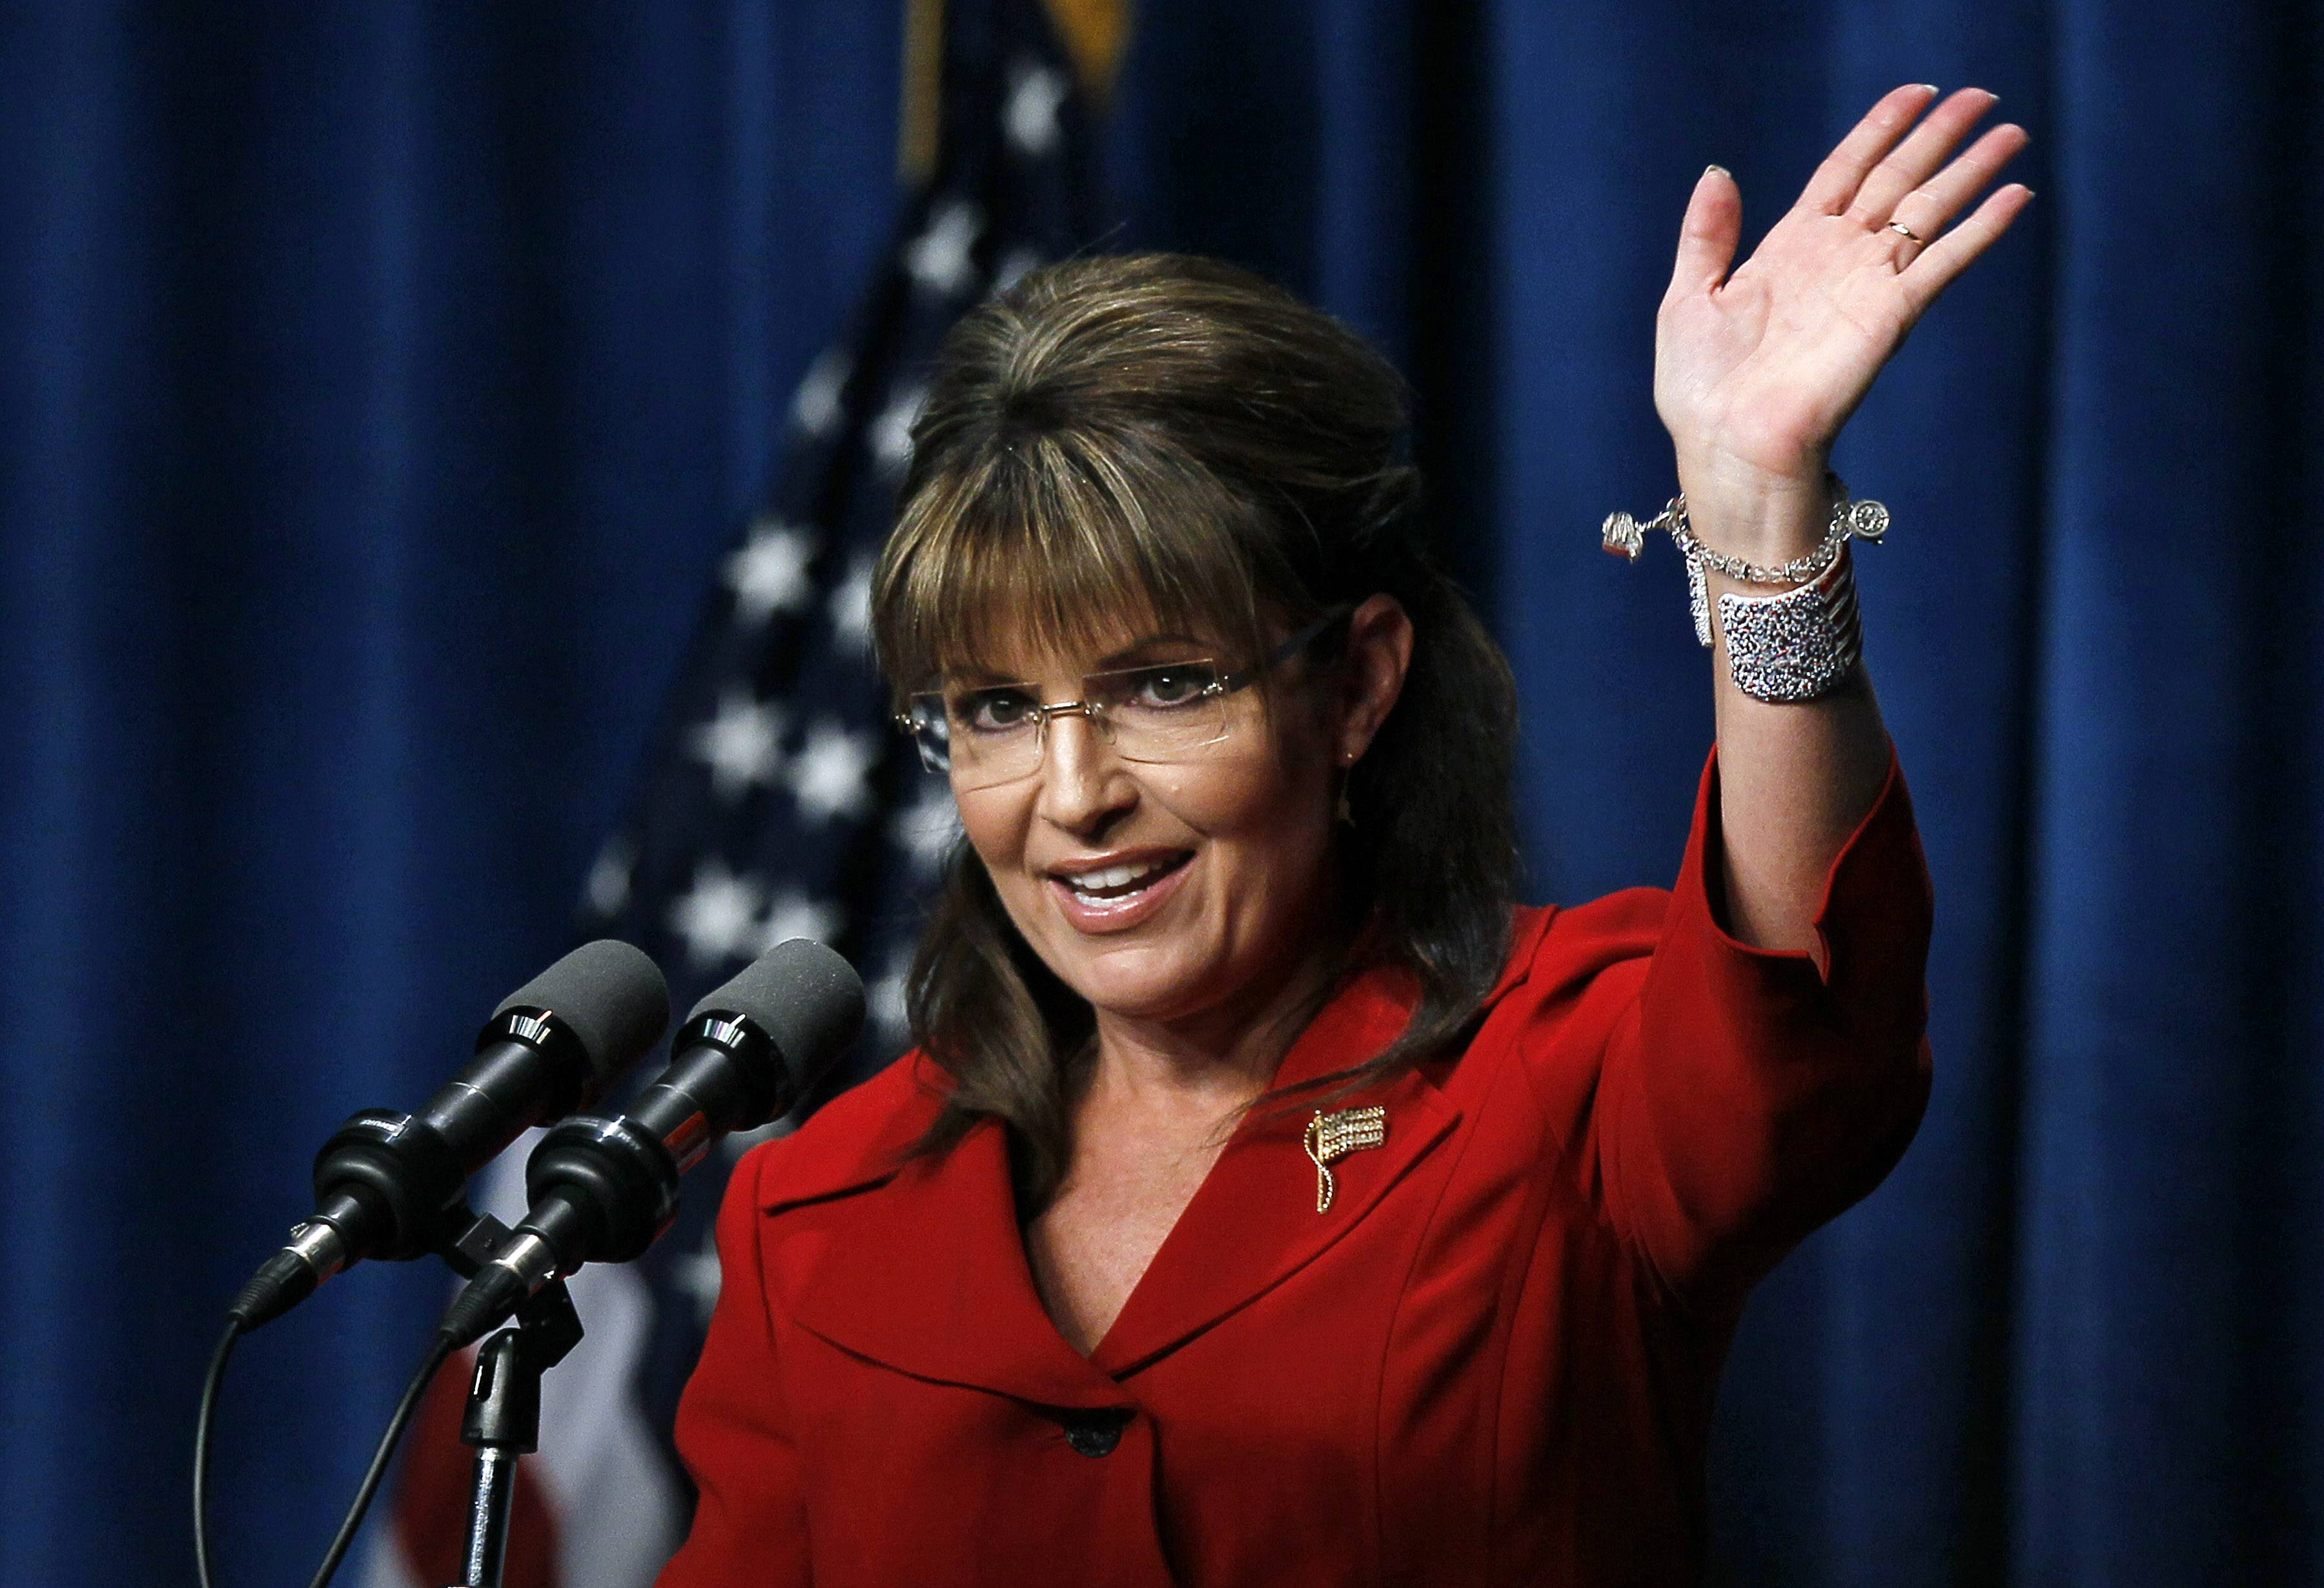 Sarah Palin won't be waving to her fans on Dec. 1 in Naperville — she canceled a scheduled book-signing appearance.